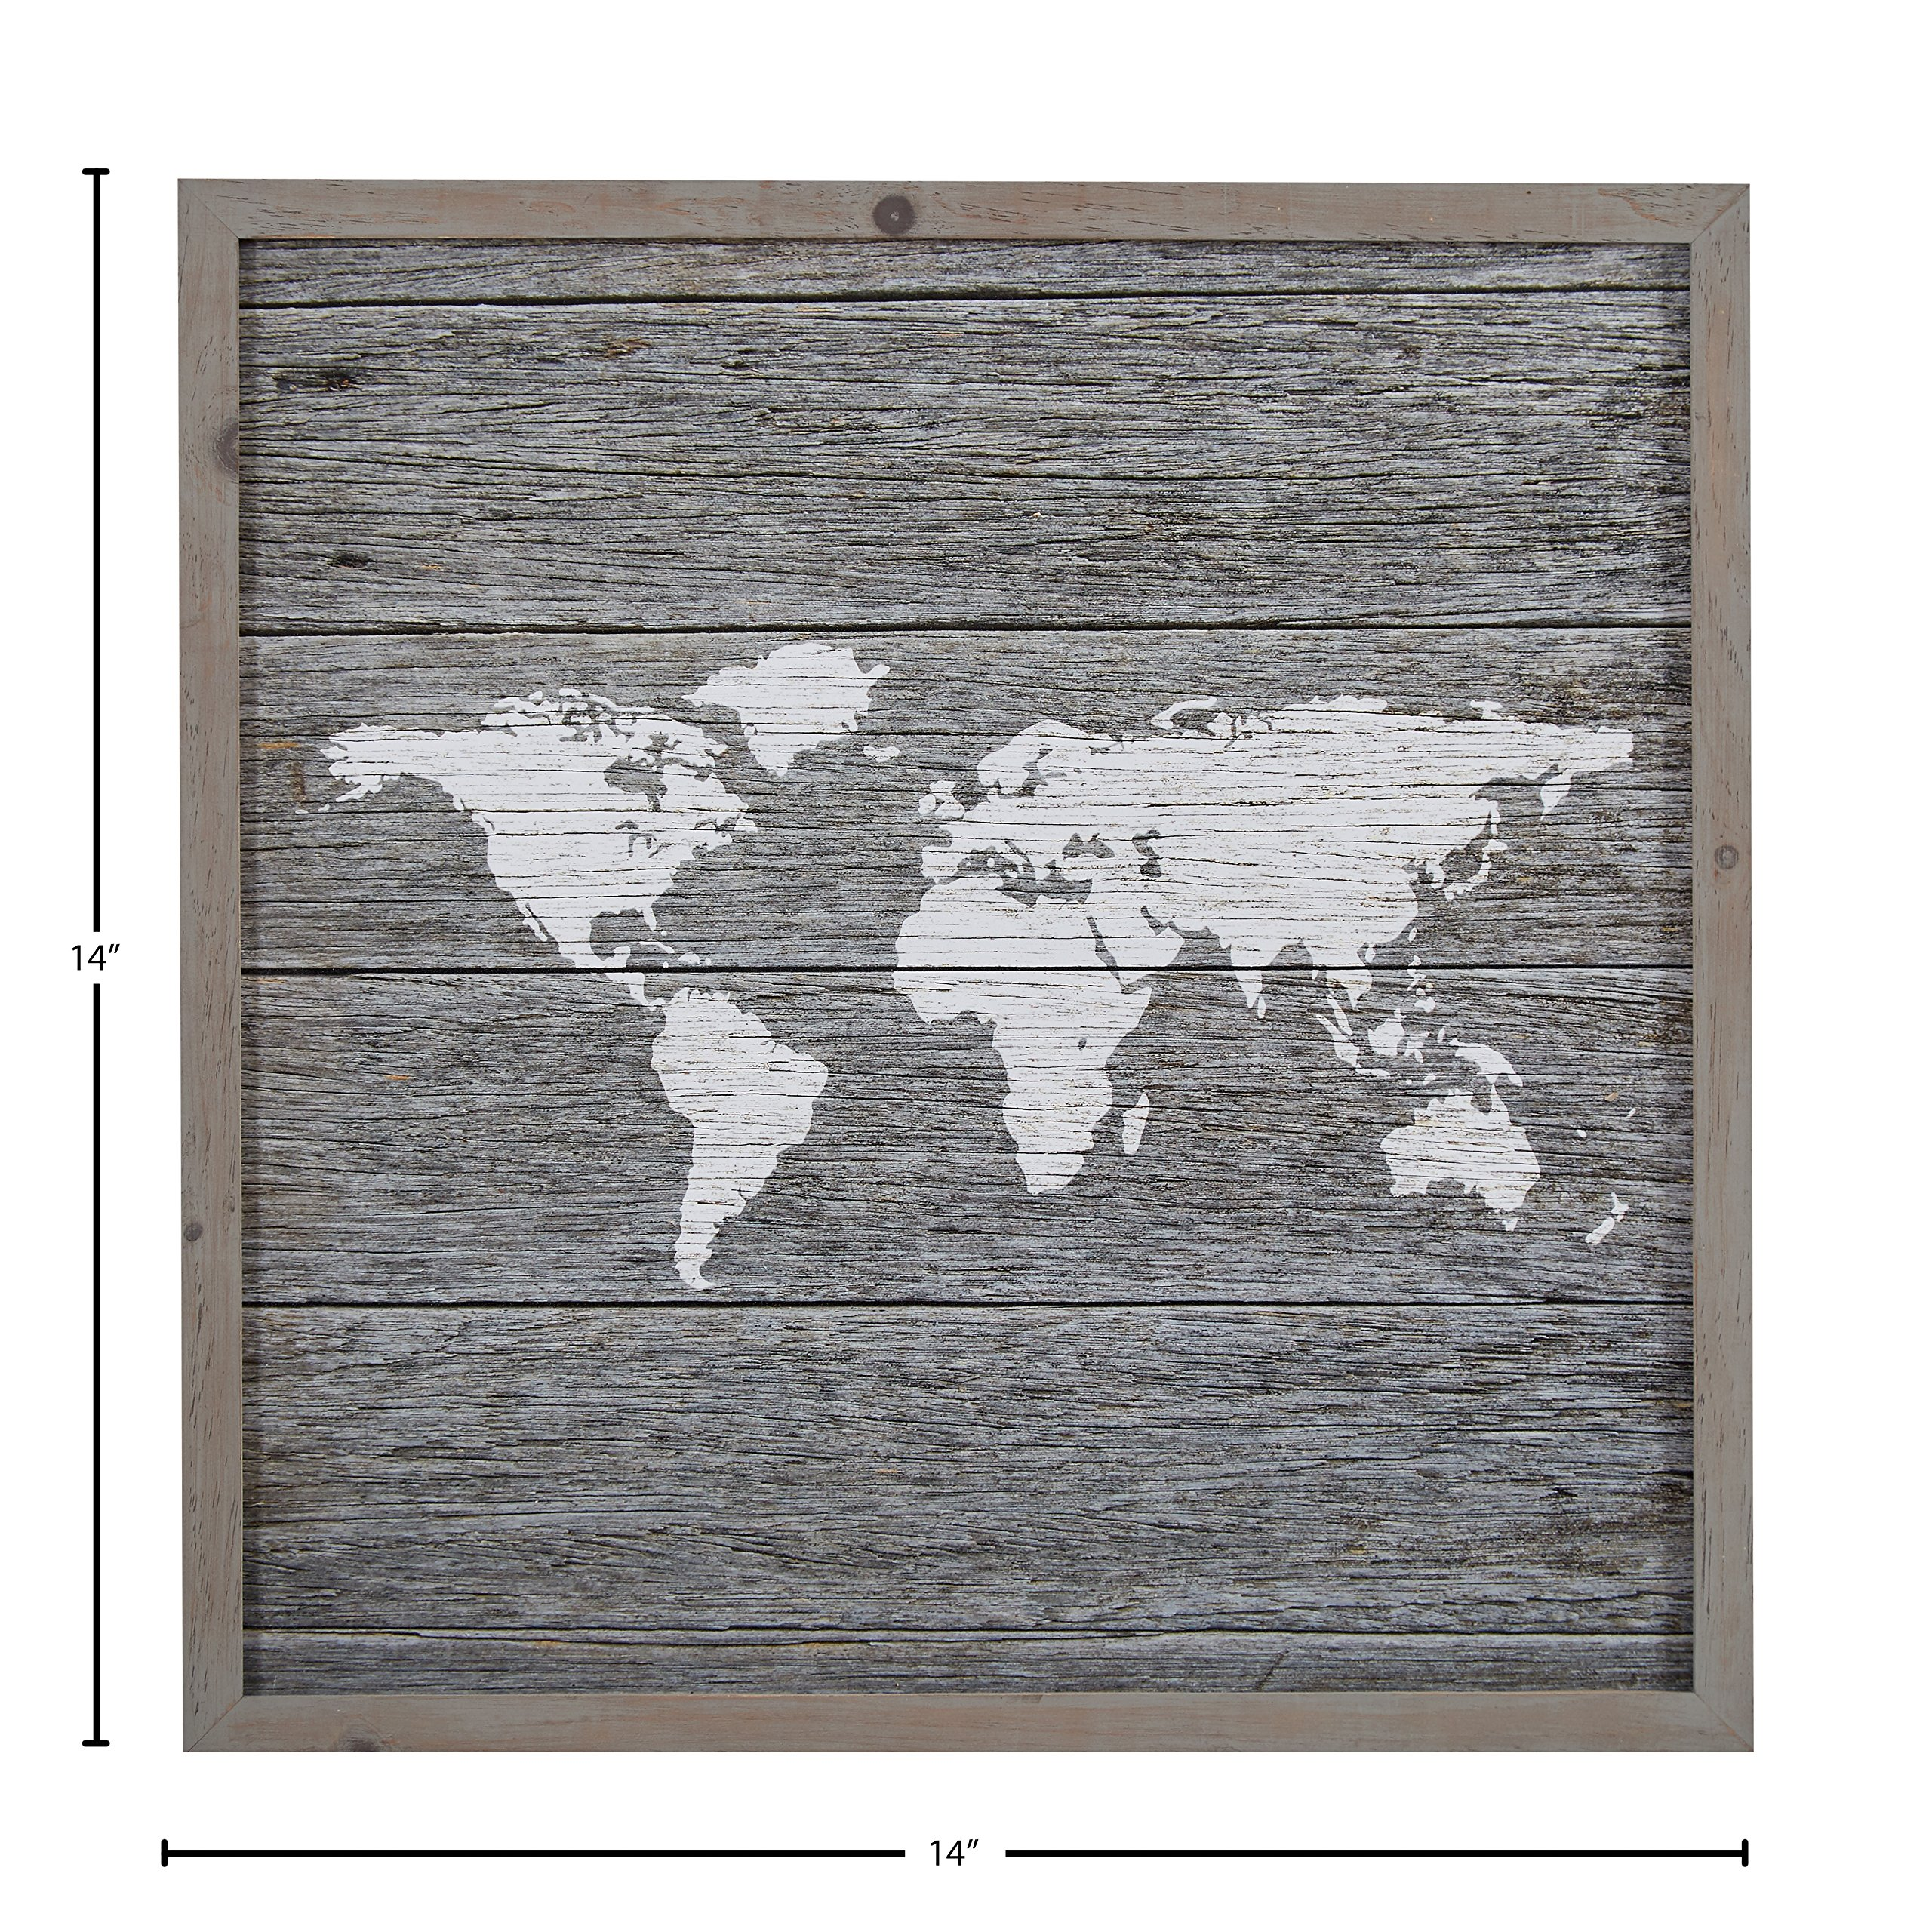 Global Map, Paper on Wood, Grey Wood Frame, 14'' x 14'' by Stone & Beam (Image #4)